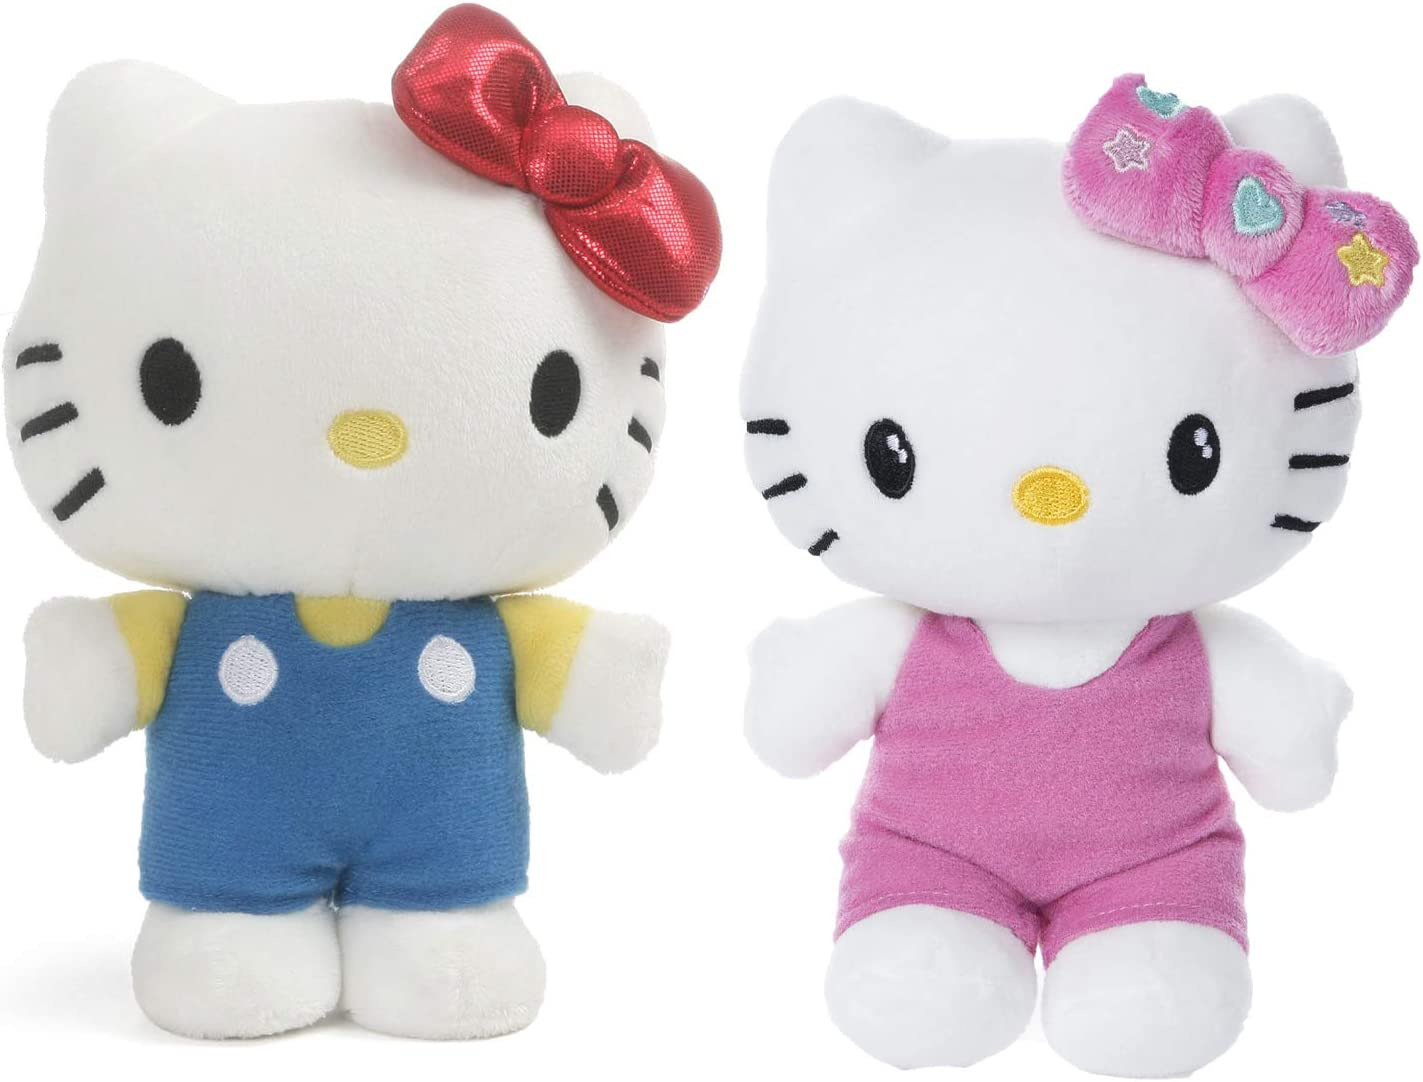 "GUND Hello Kitty Small 6"" Plush 2 Pack: Classic Hello Kitty, and Pink Outfit Hello Kitty"